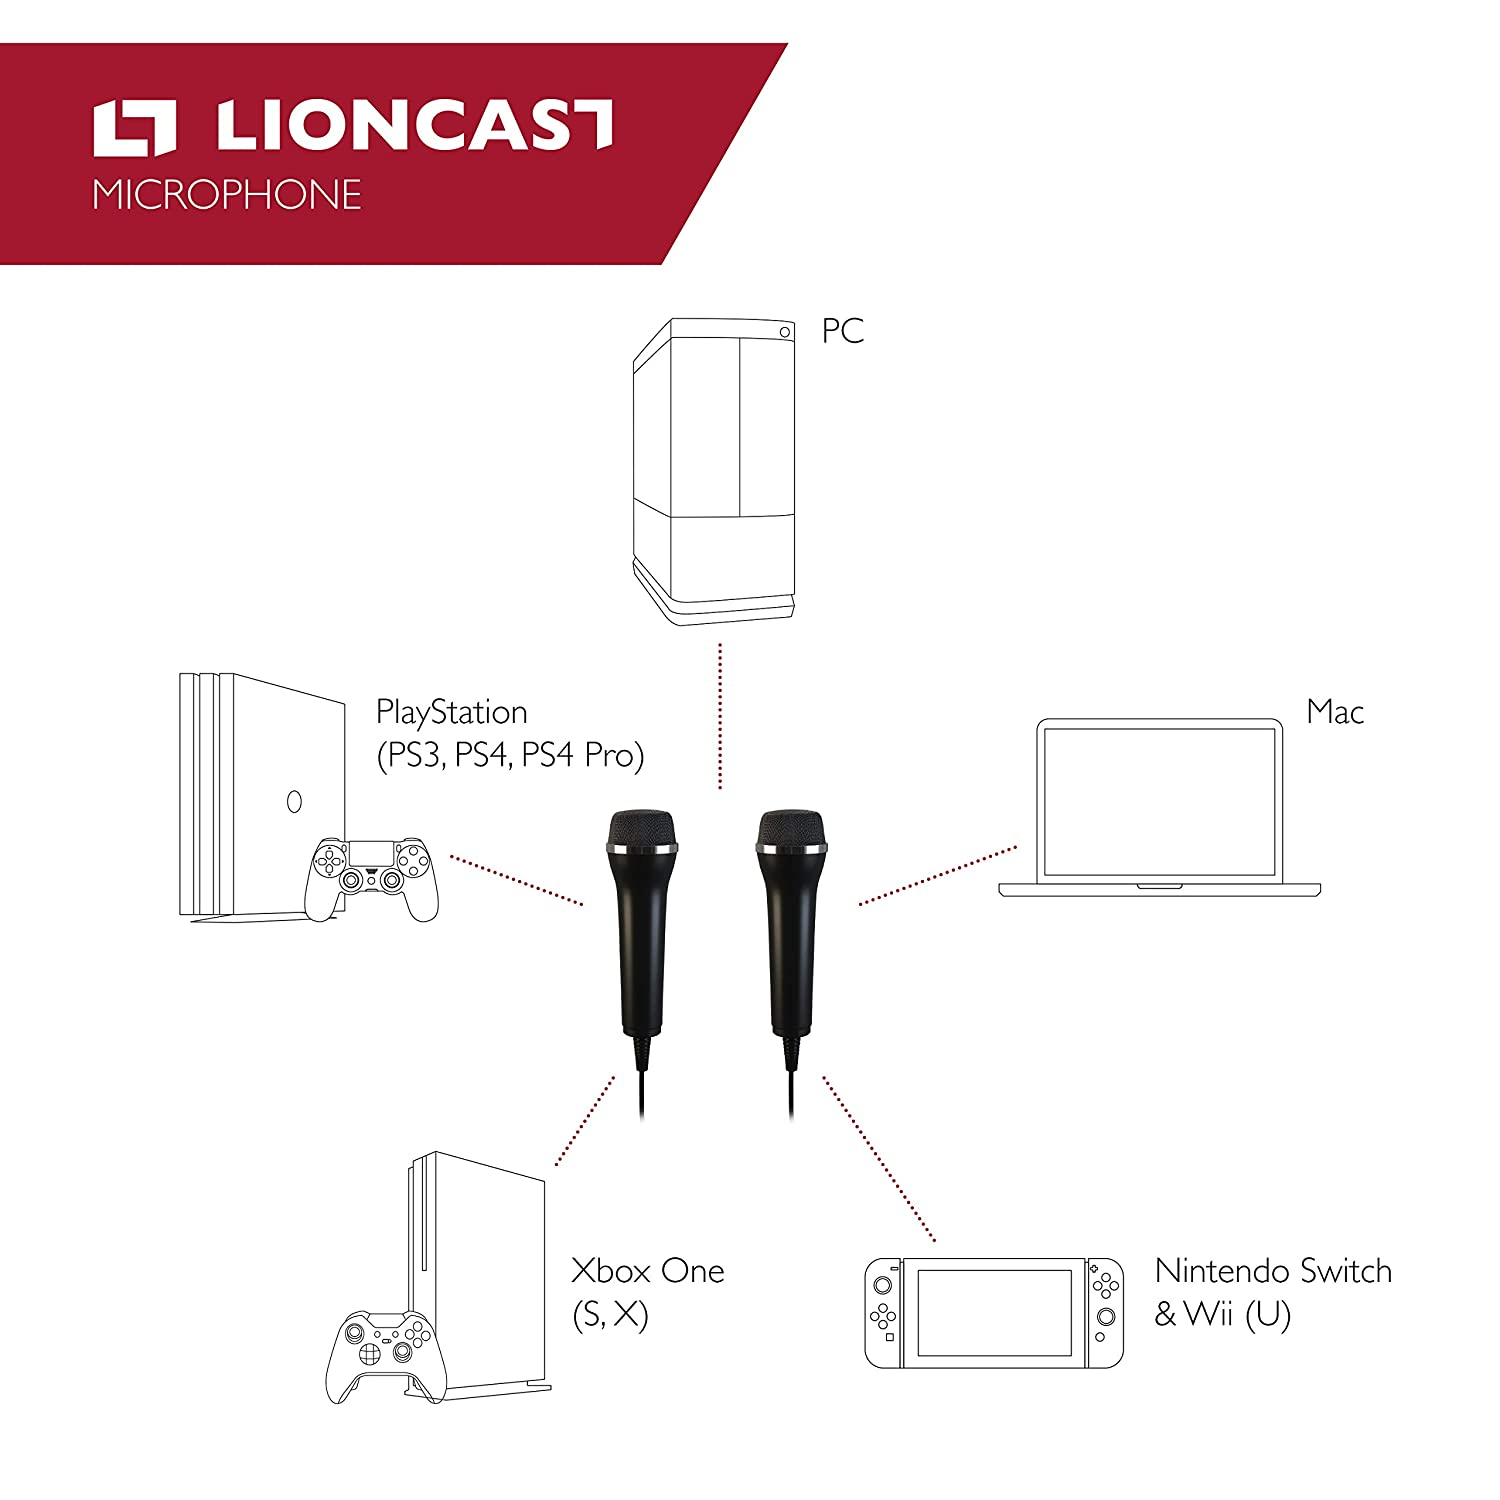 Lioncast Universal USB Microphone for Computer and Karaoke Gaming  (SingStar, Voice of Germany, Lets Sing, We Sing) Compatible with Wii,  Playstation